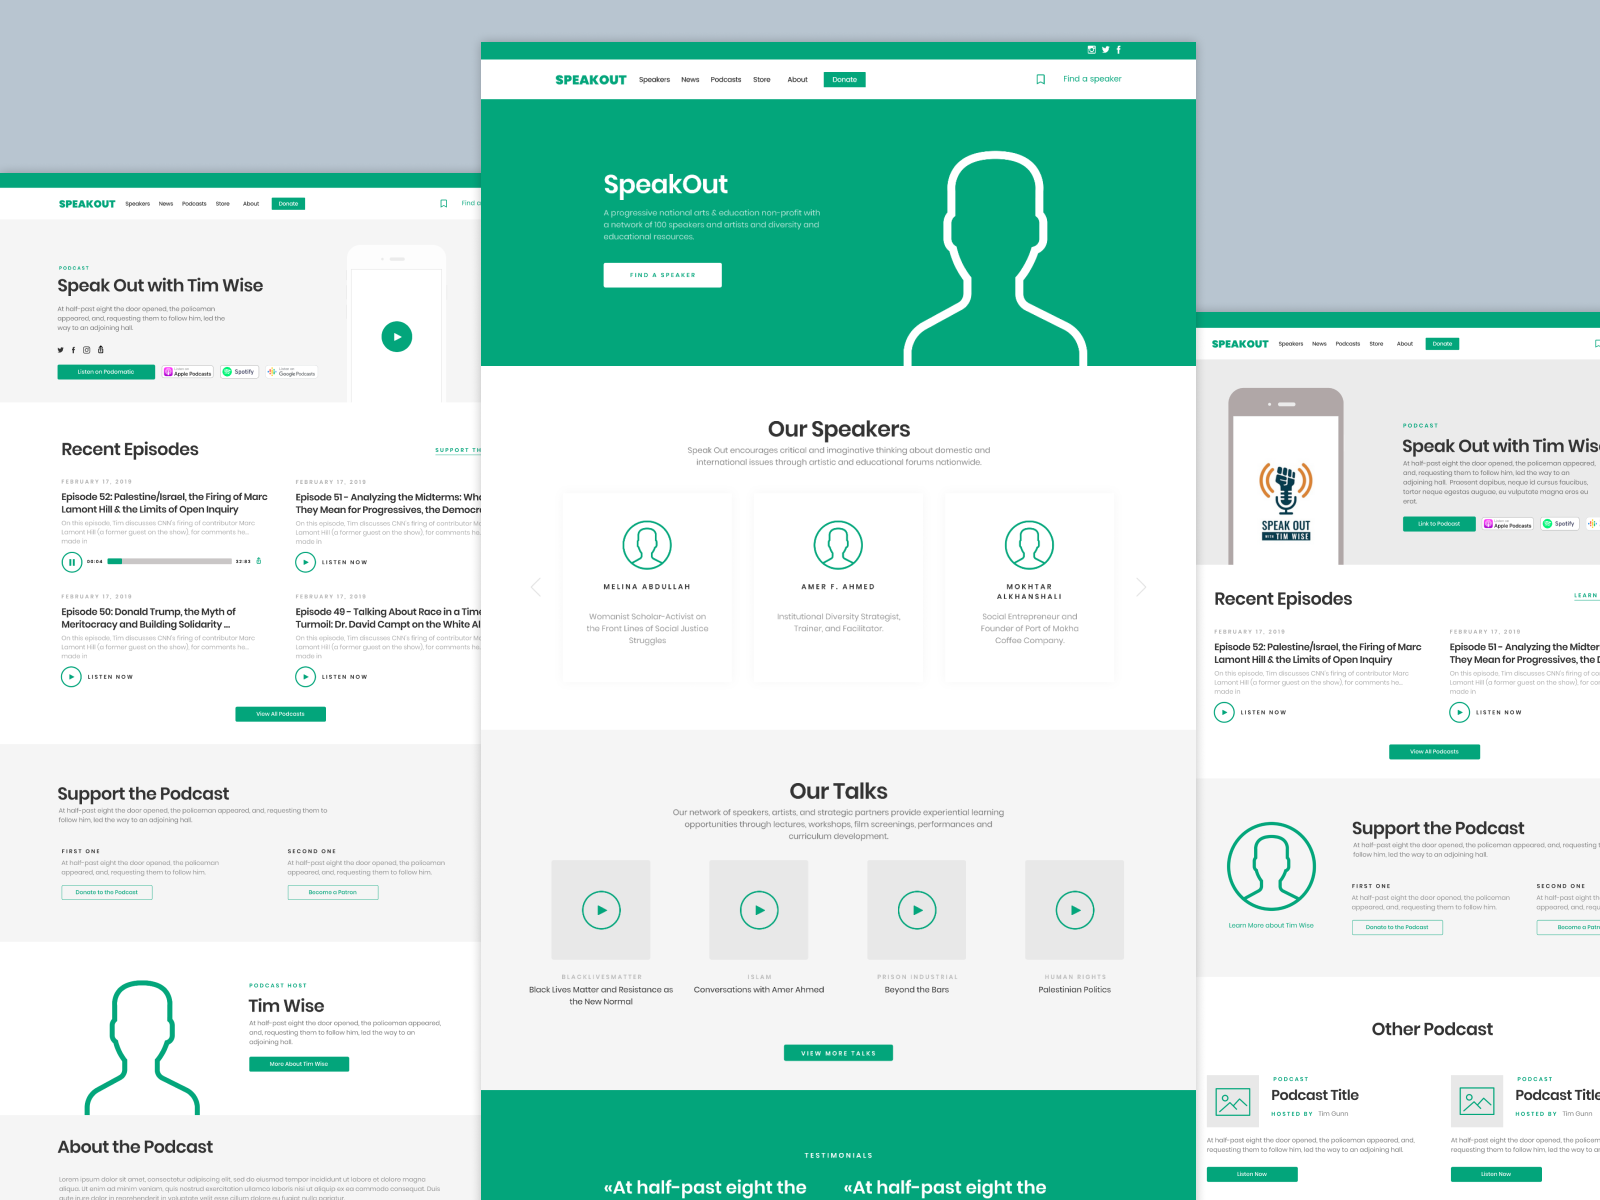 Speakout dribbble wireframes 2019 10 01